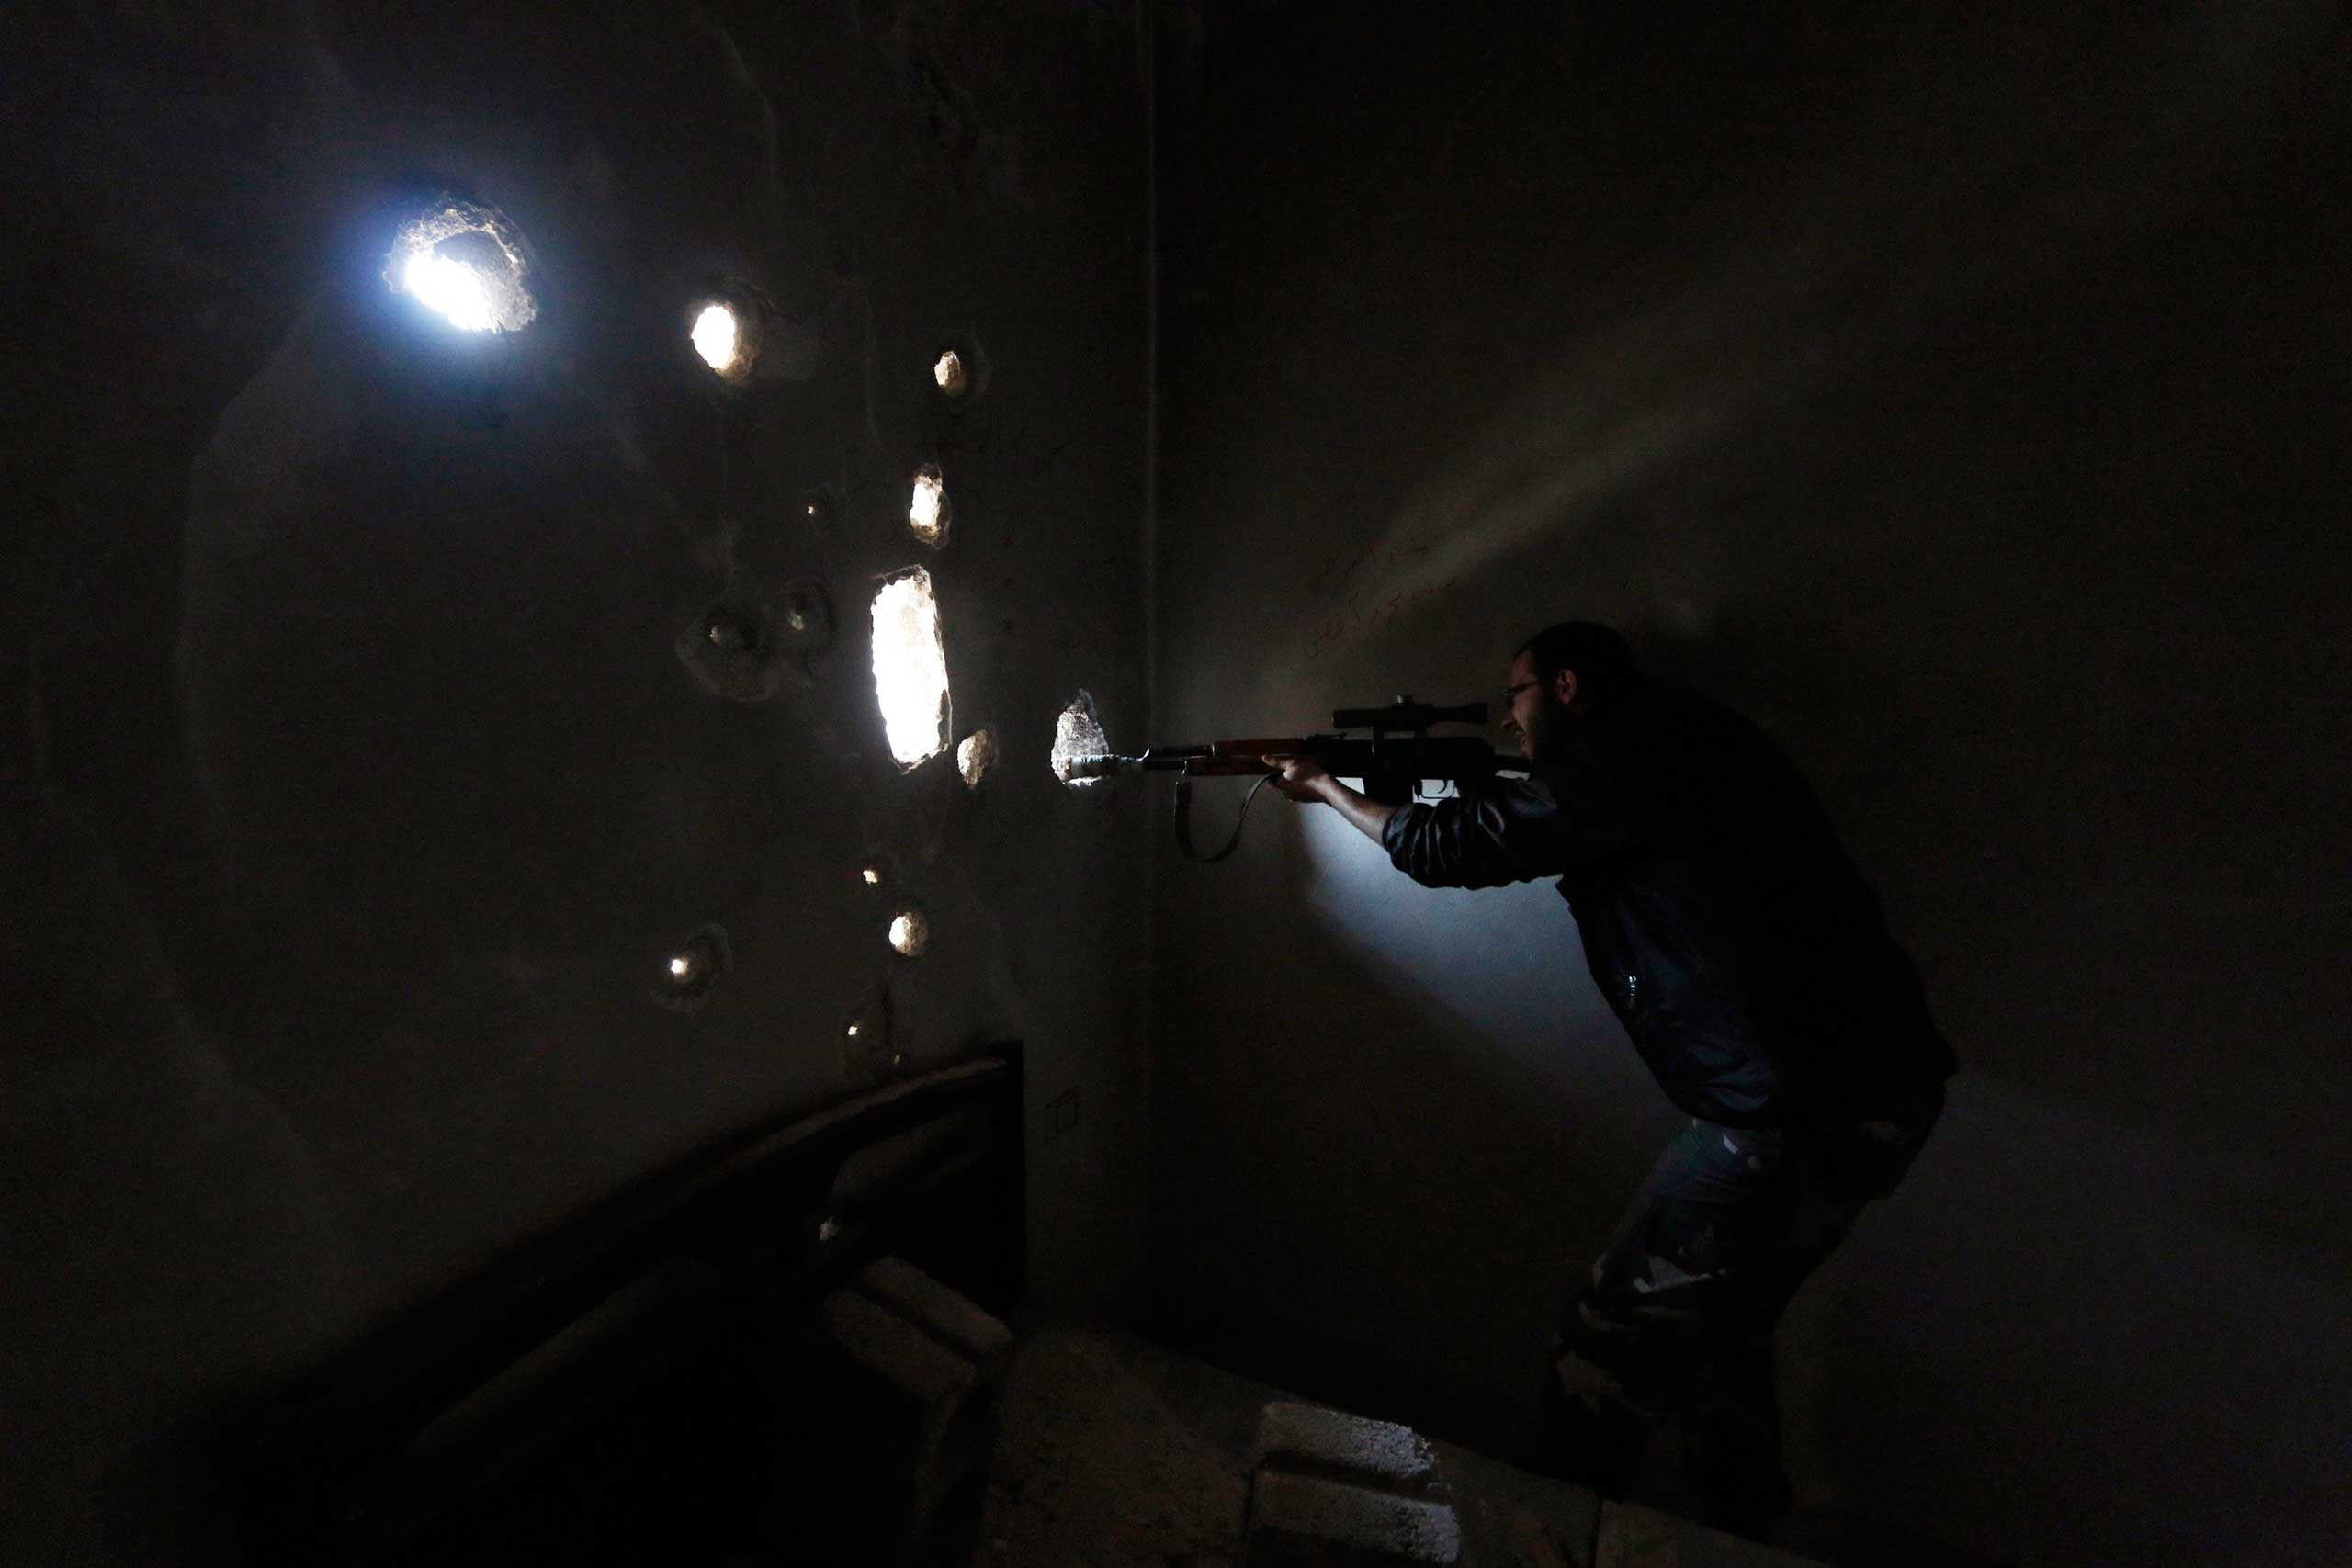 Oct. 26, 2014.  A Free Syrian Army fighter carrying a weapon looks through a hole in the wall inside a damaged building on the frontline of Aleppo's Al-Ezaa neighborhood.